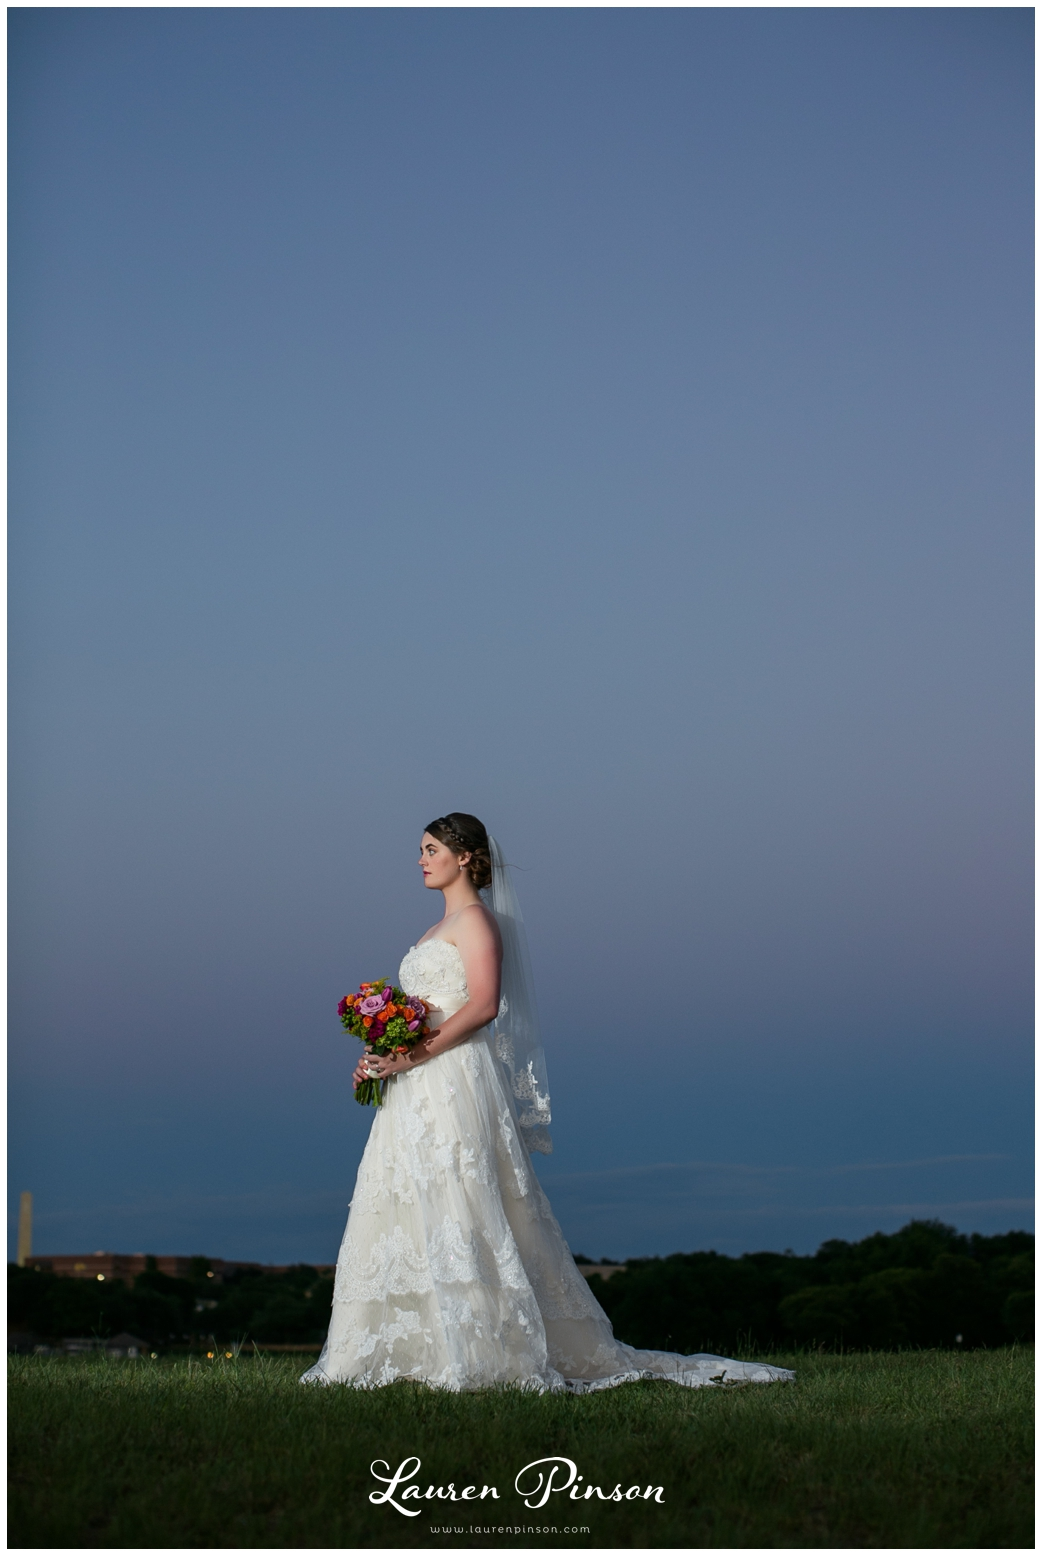 adriactica-village-bella-donna-chapel-mckinney-texas-wedding-photographer-sherman-northtexas-bridal-portraits-photography_0205.jpg